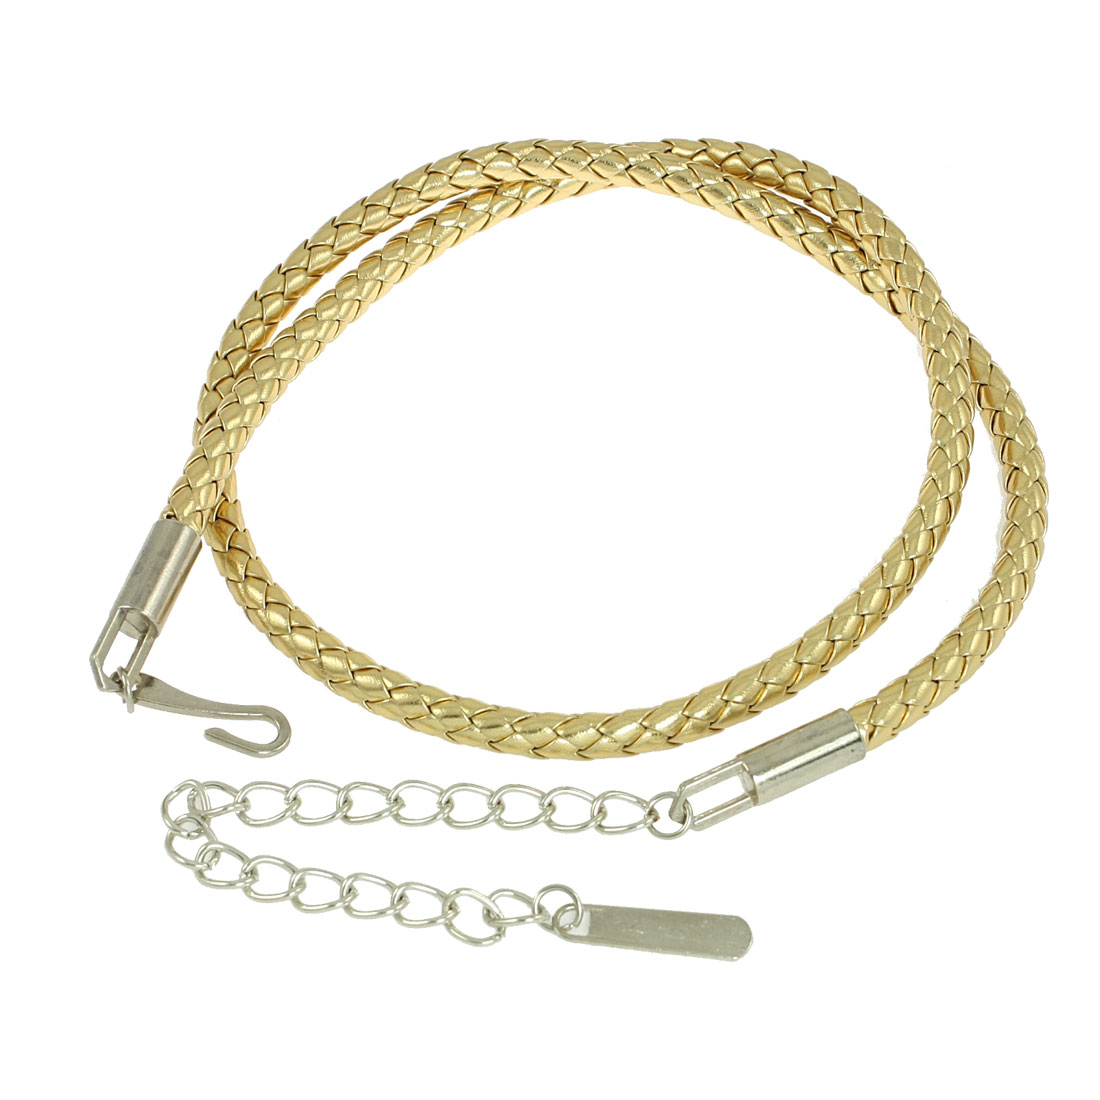 Gold Tone Faux Leather Braided Round Adjustable Skinny Waist Belt for Woman